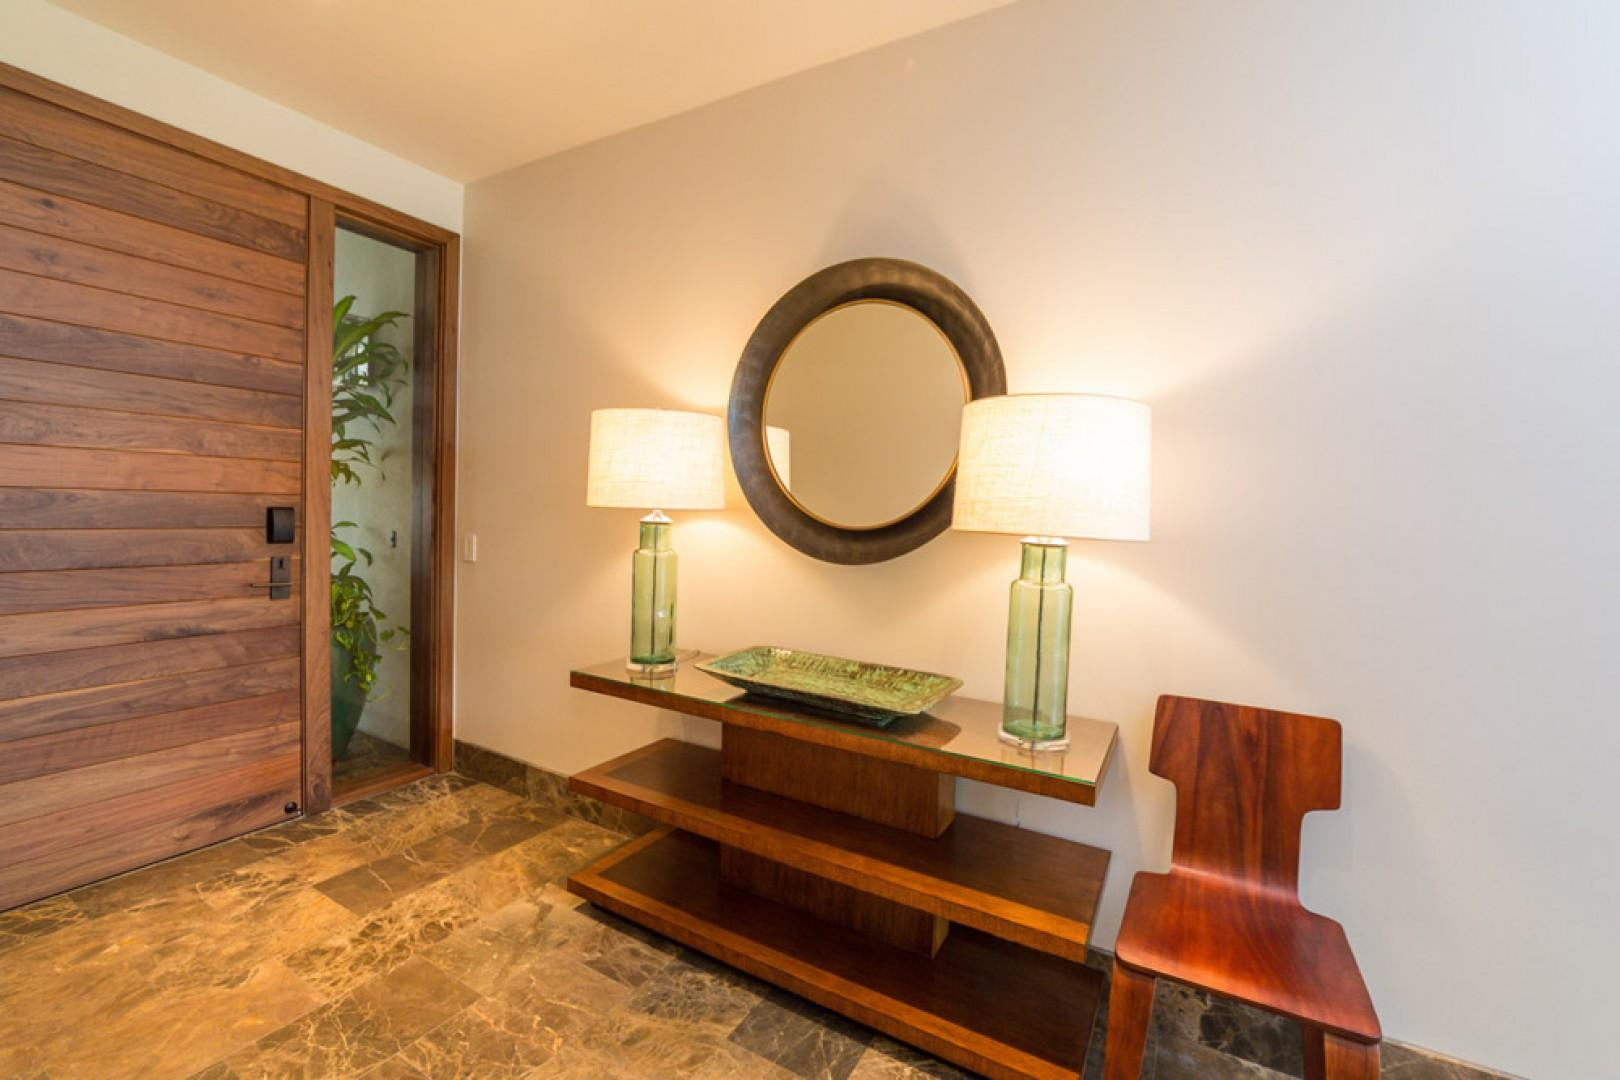 SeaGlass Villa 810 at Andaz Maui Wailea Resort - Private Entrance and Foyer Welcomes You to SeaGlass 810